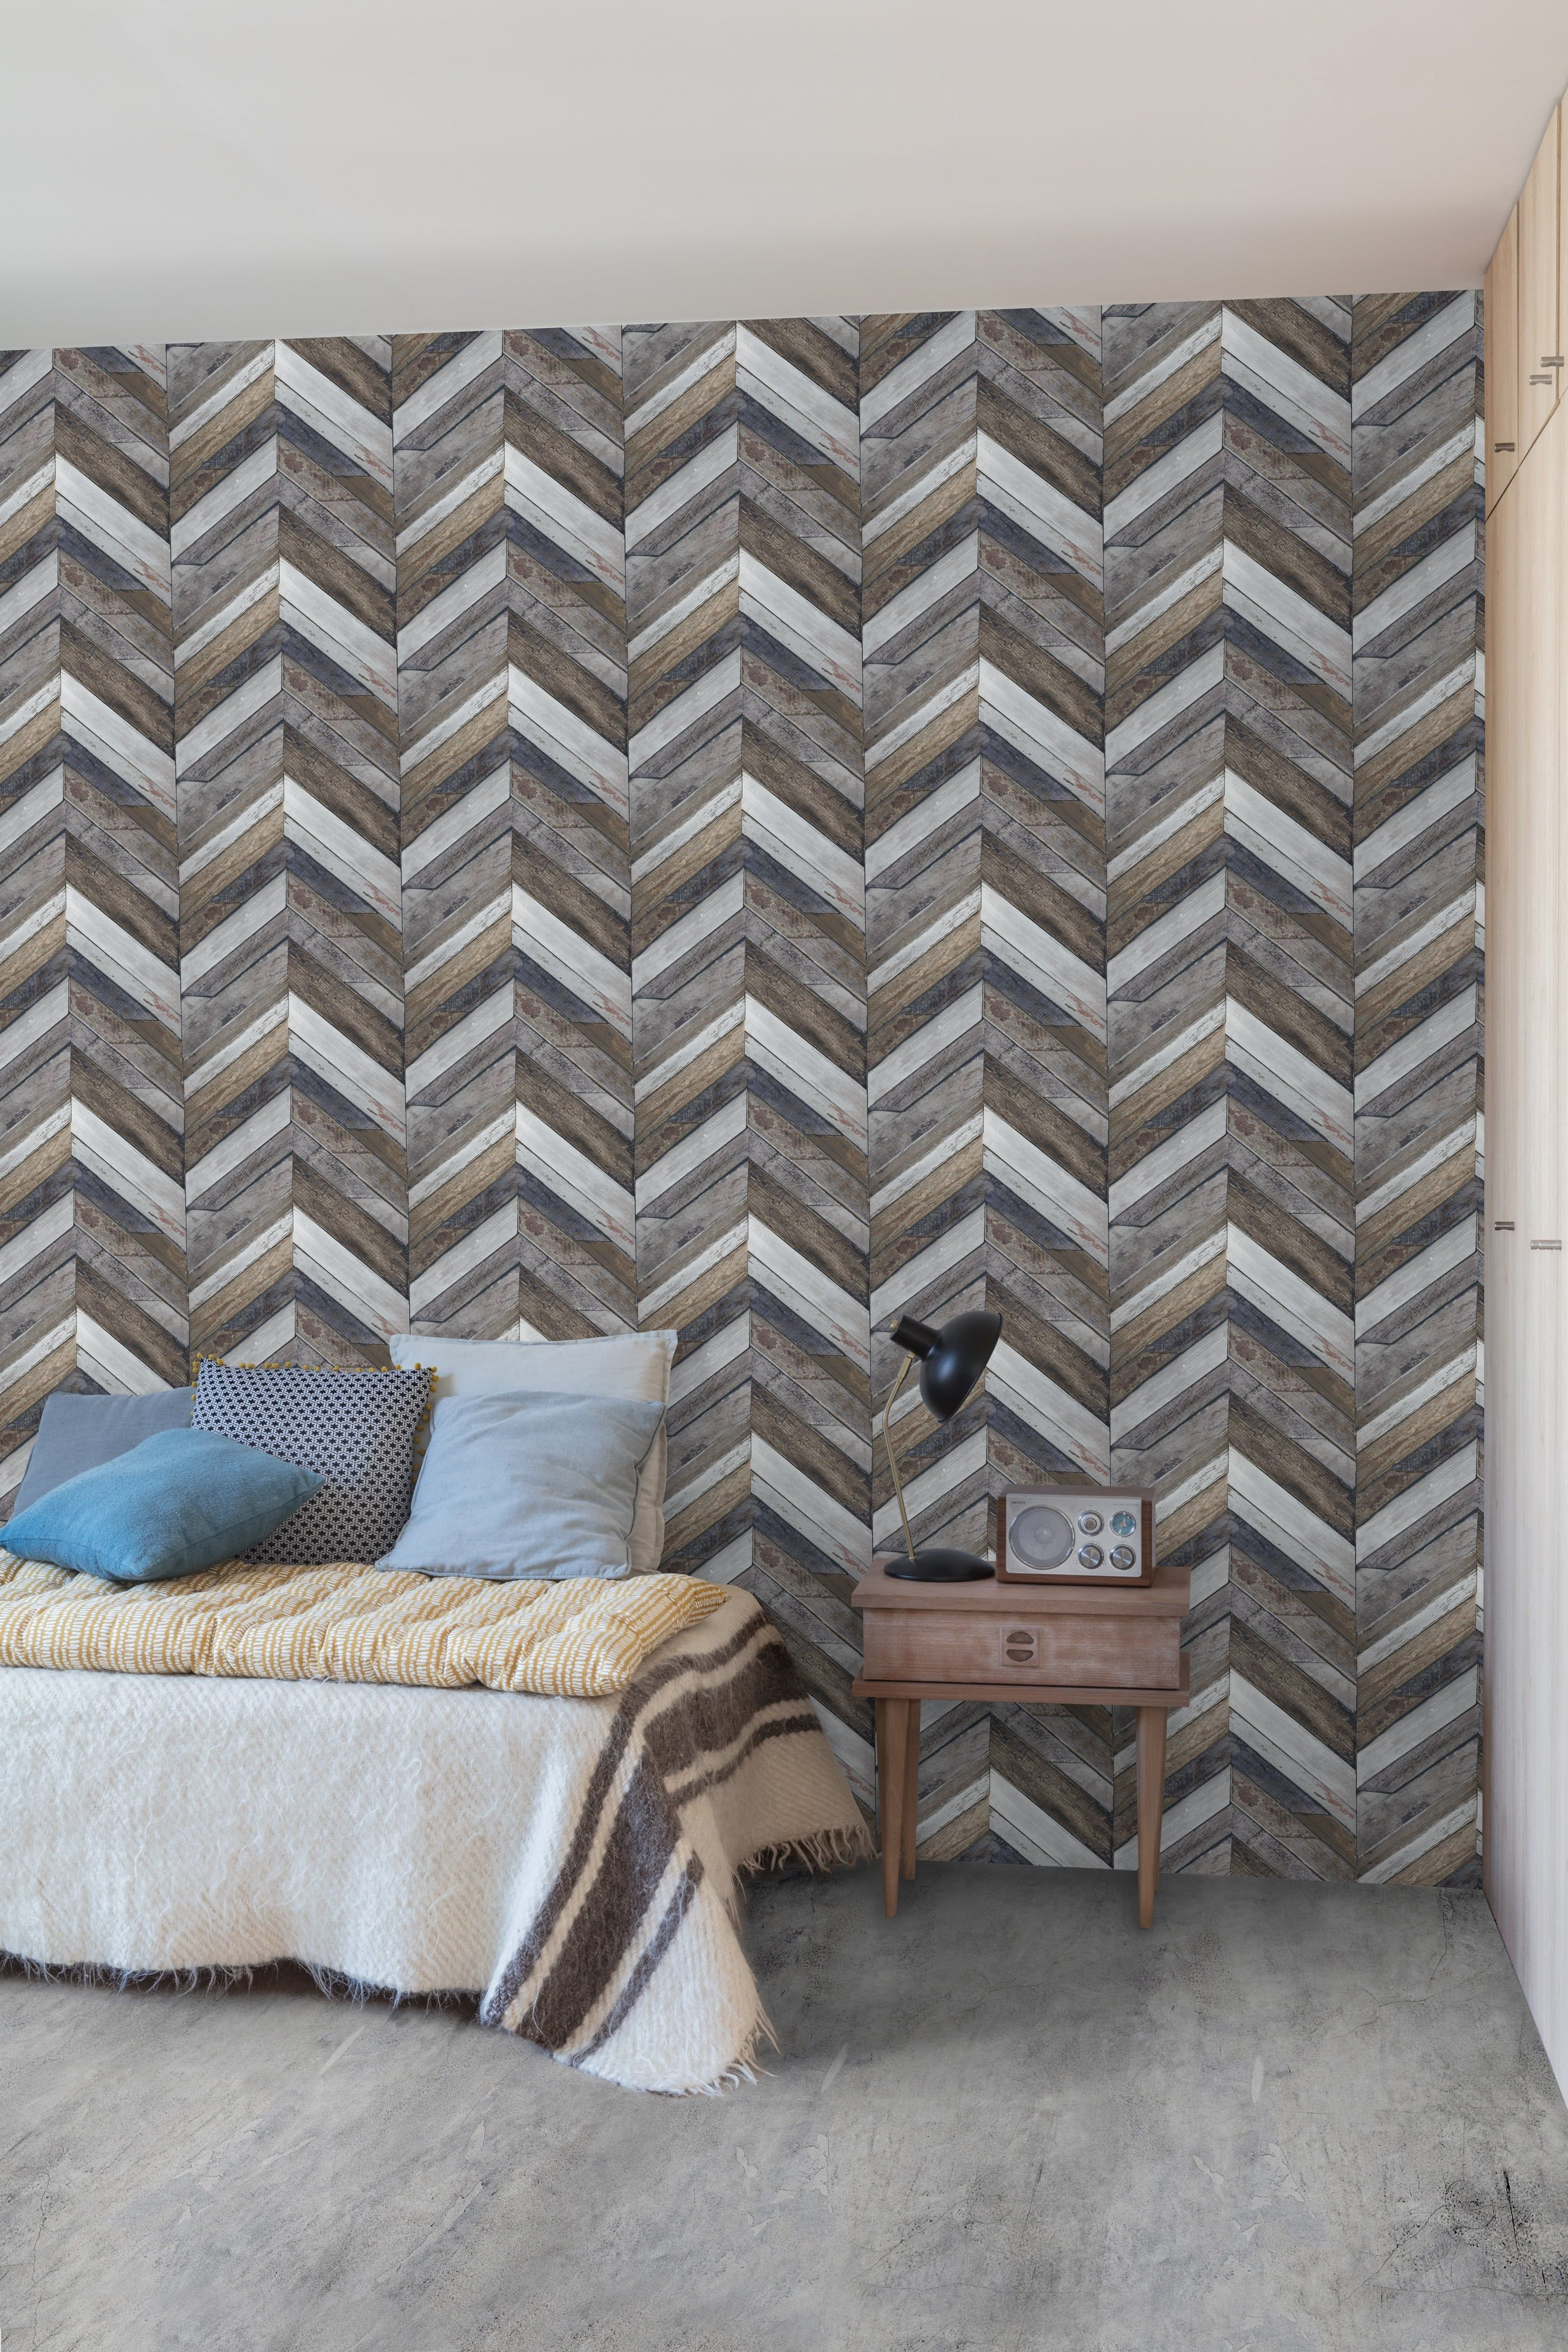 A brand new wallpaper colection. The Lagom collection